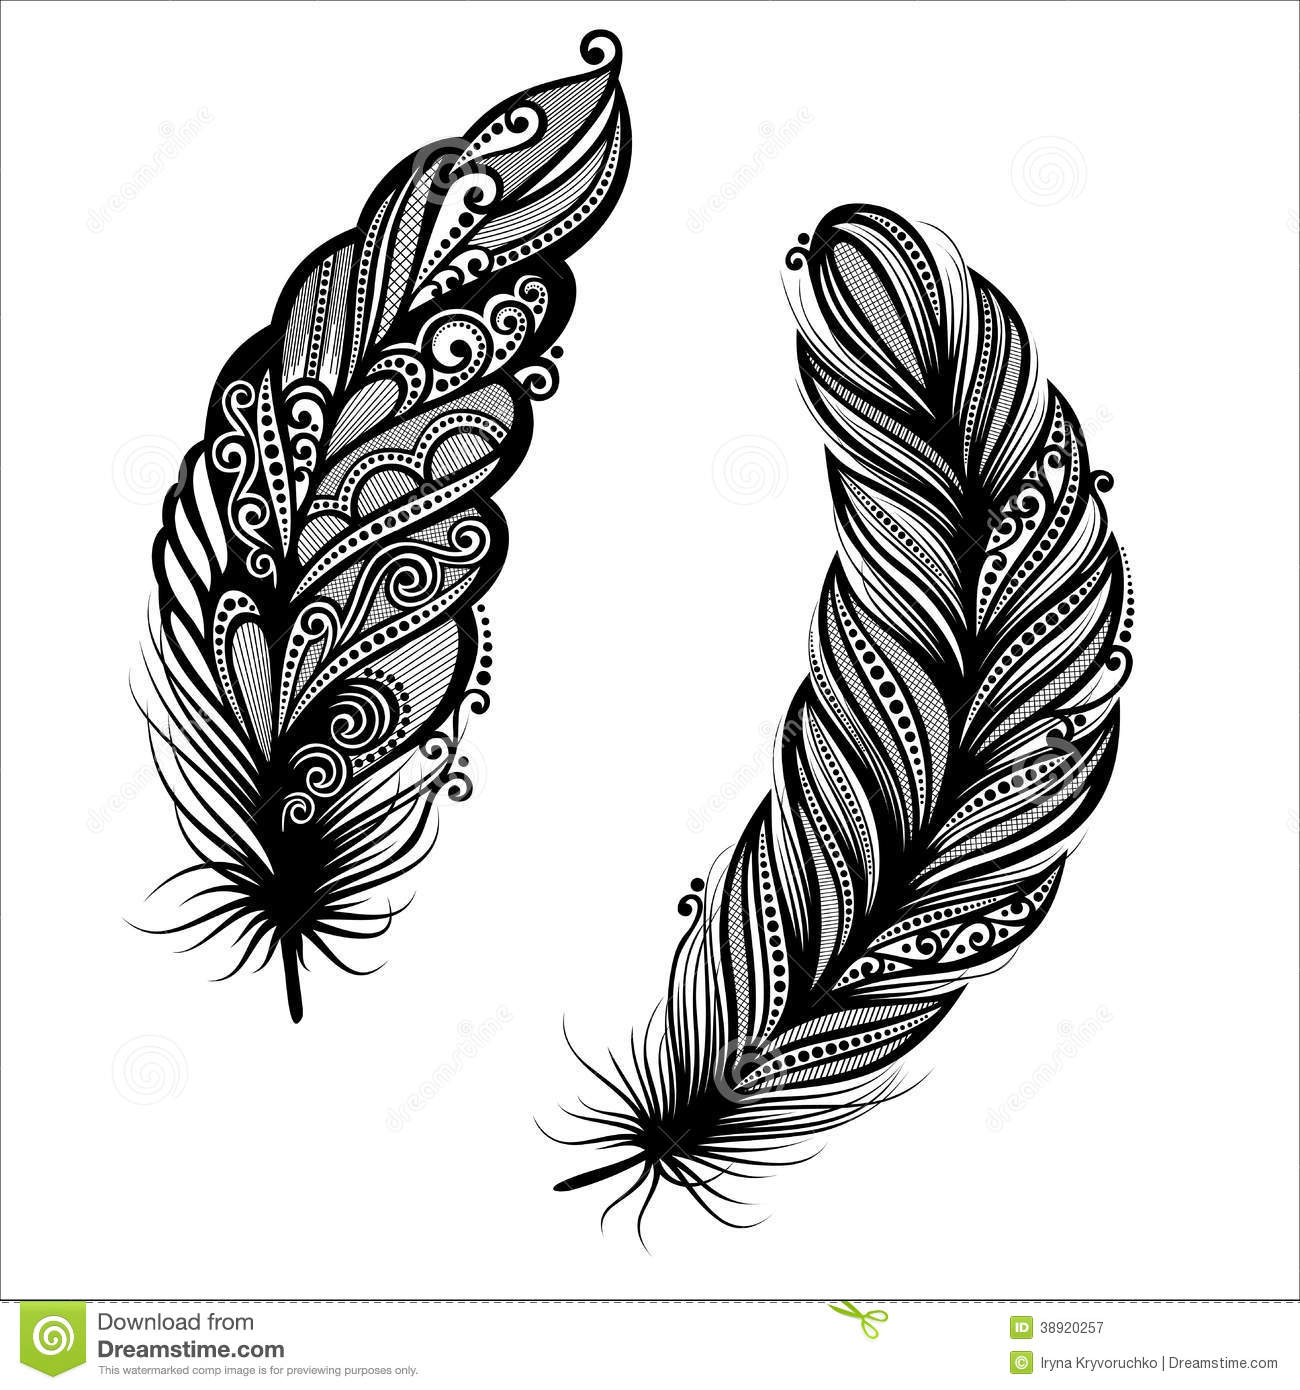 Peerless Decorative Feather (Vector), Patterned design, Tattoo.